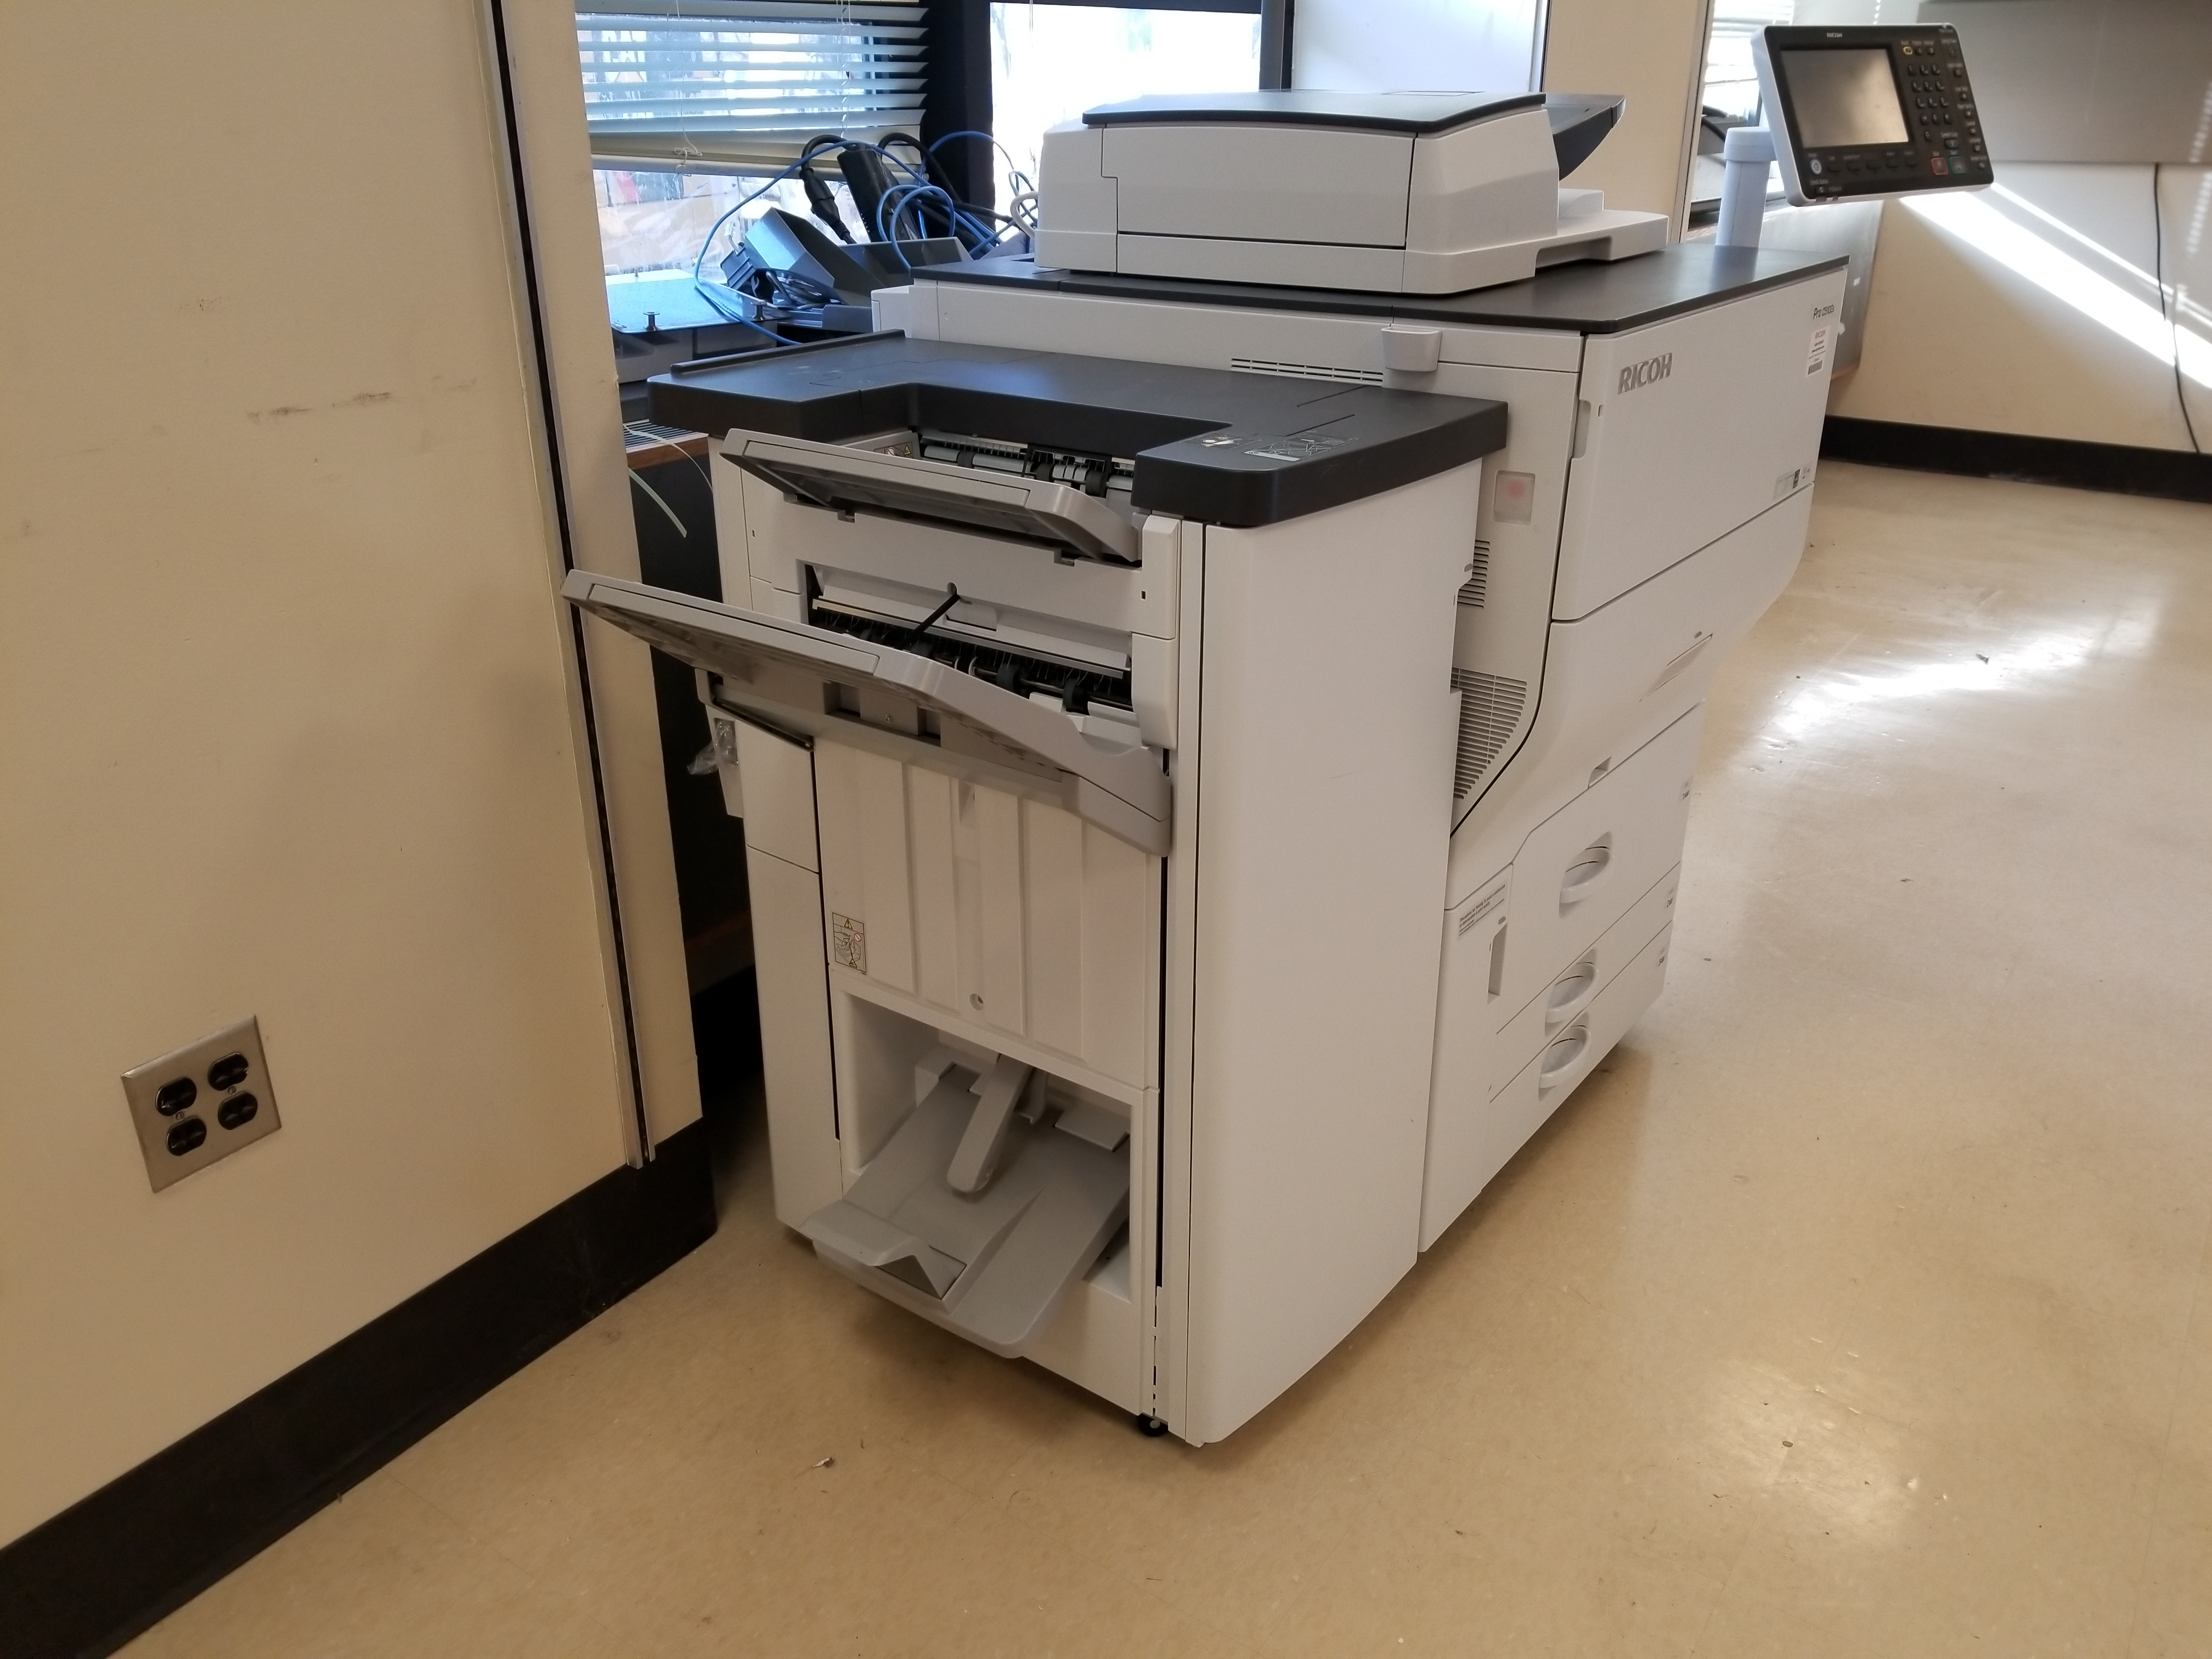 2016 Ricoh Pro C5100 with Booklet Finisher with Scanner - 2